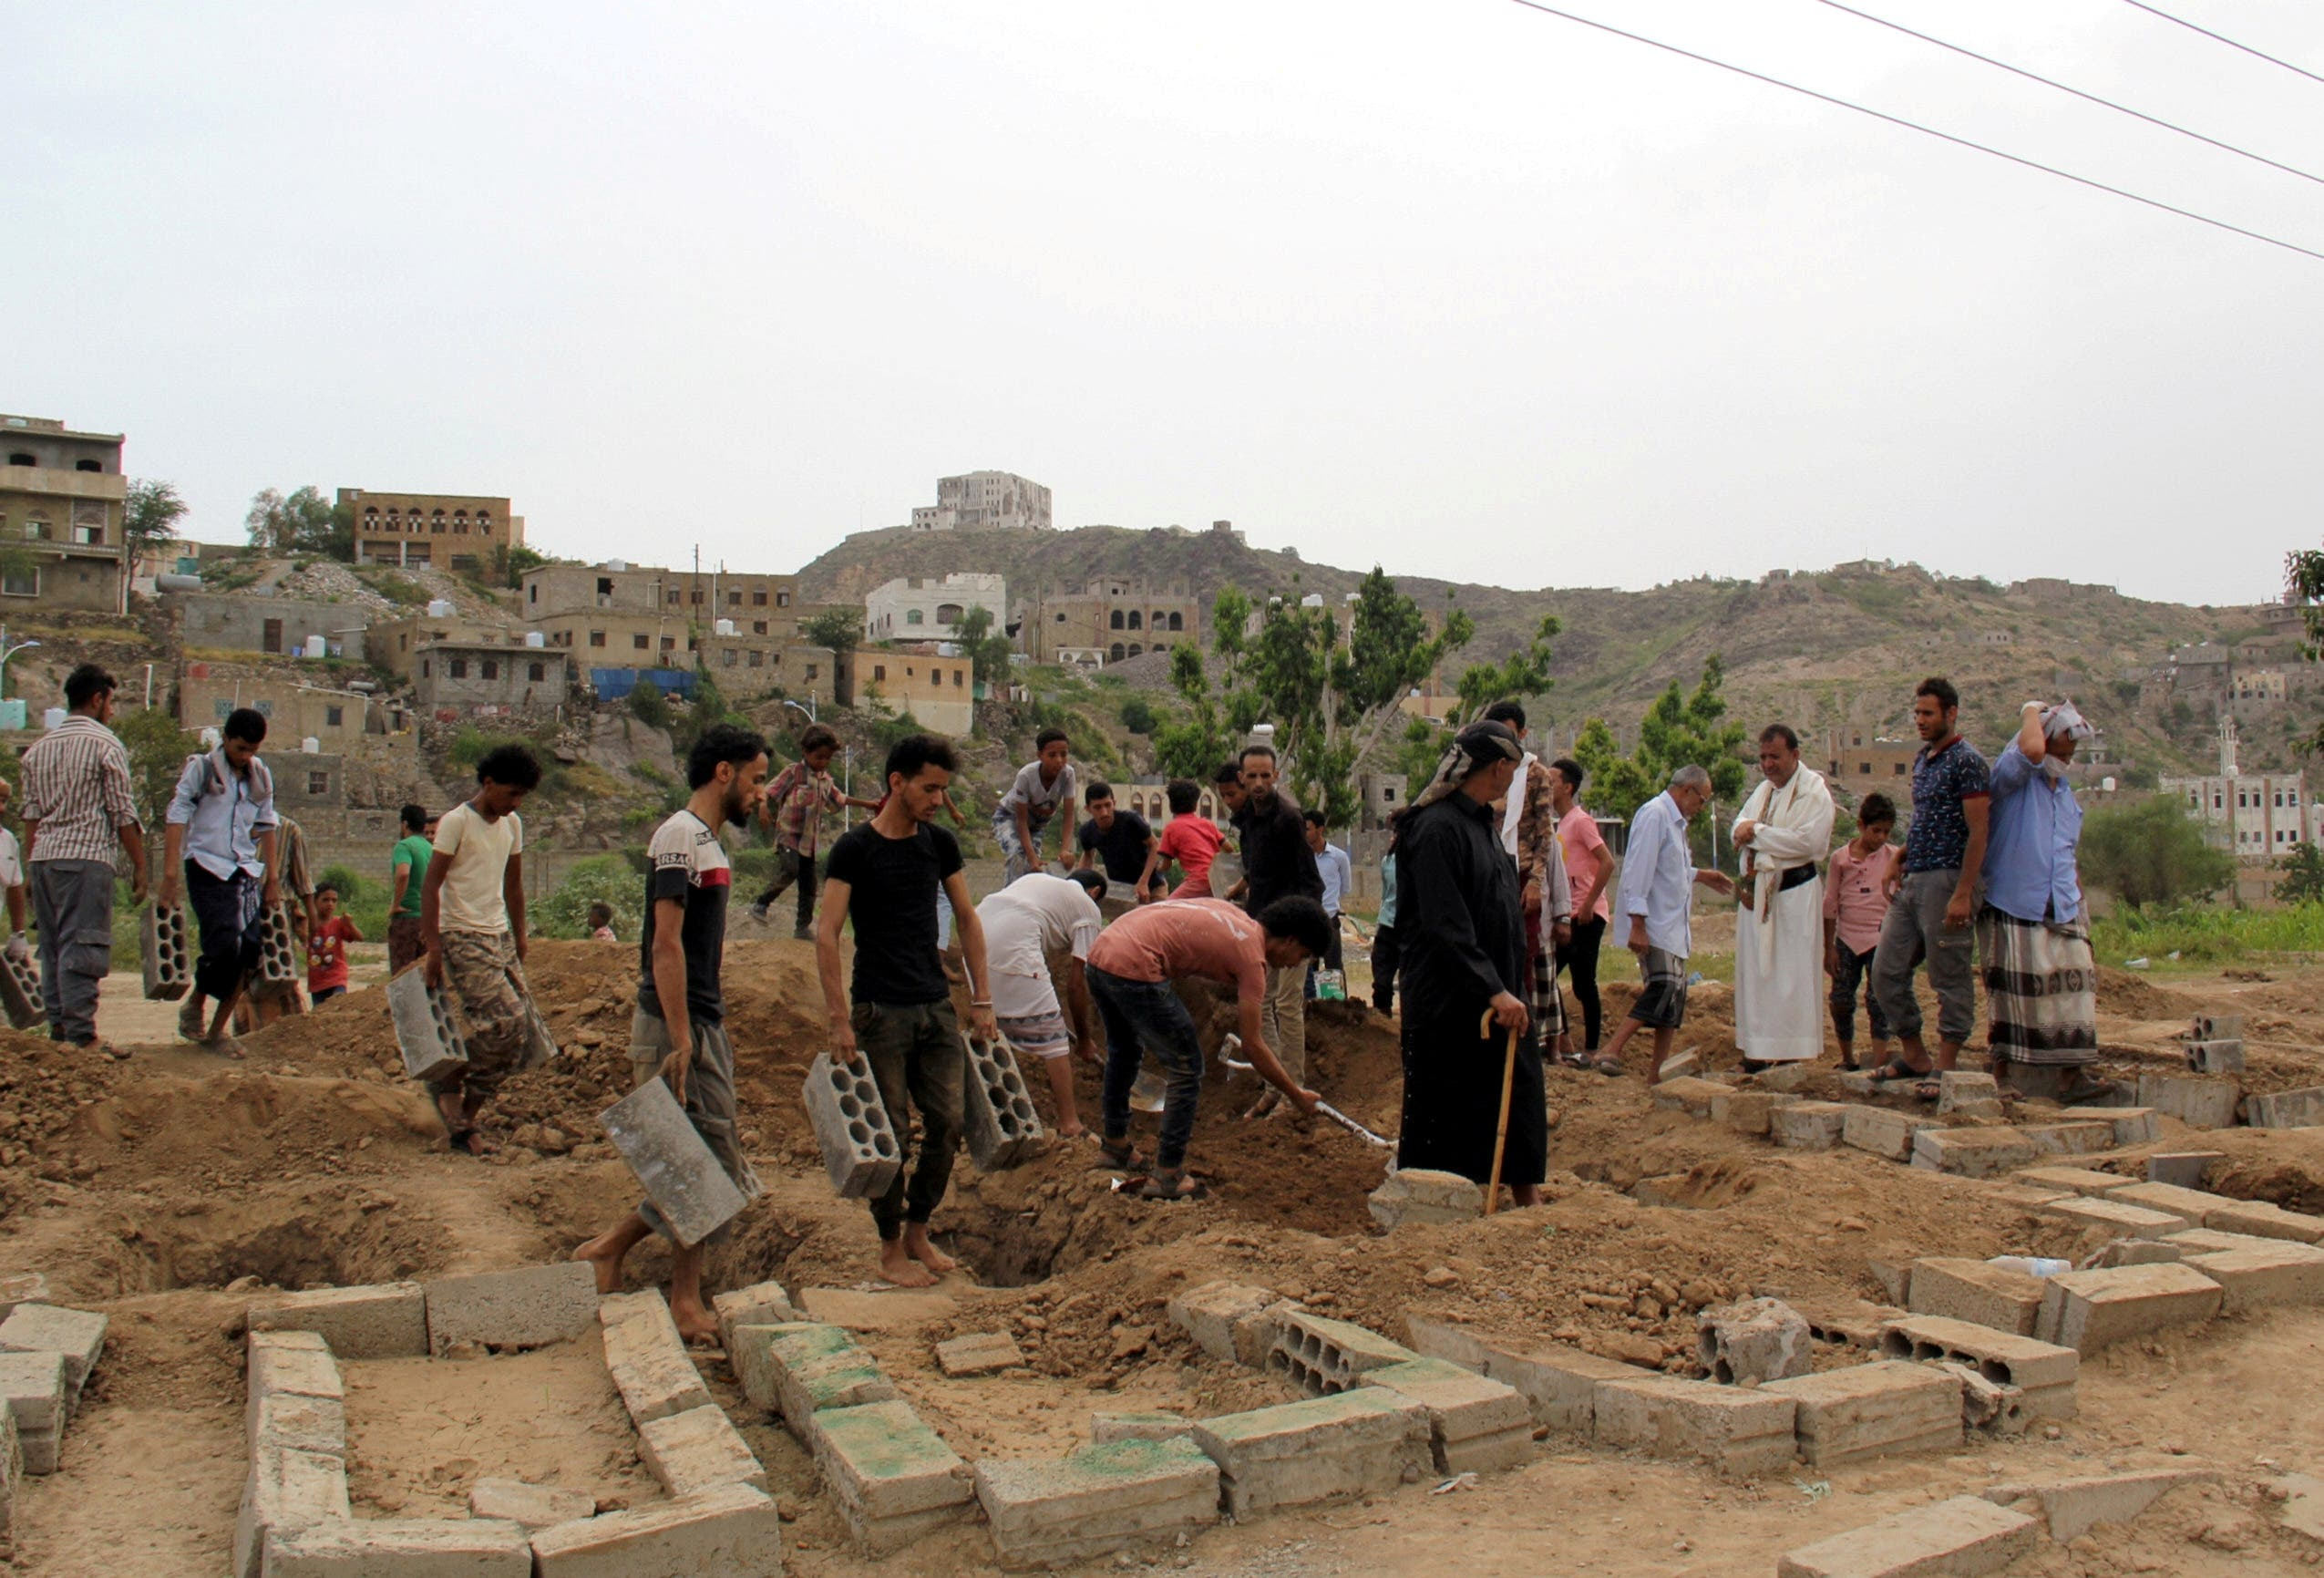 People arrange a grave after a burial at a cemetery where victims of the coronavirus disease (COVID-19) are buried in Taiz, Yemen June 24, 2020. Picture taken June 24, 2020. (Reuters)